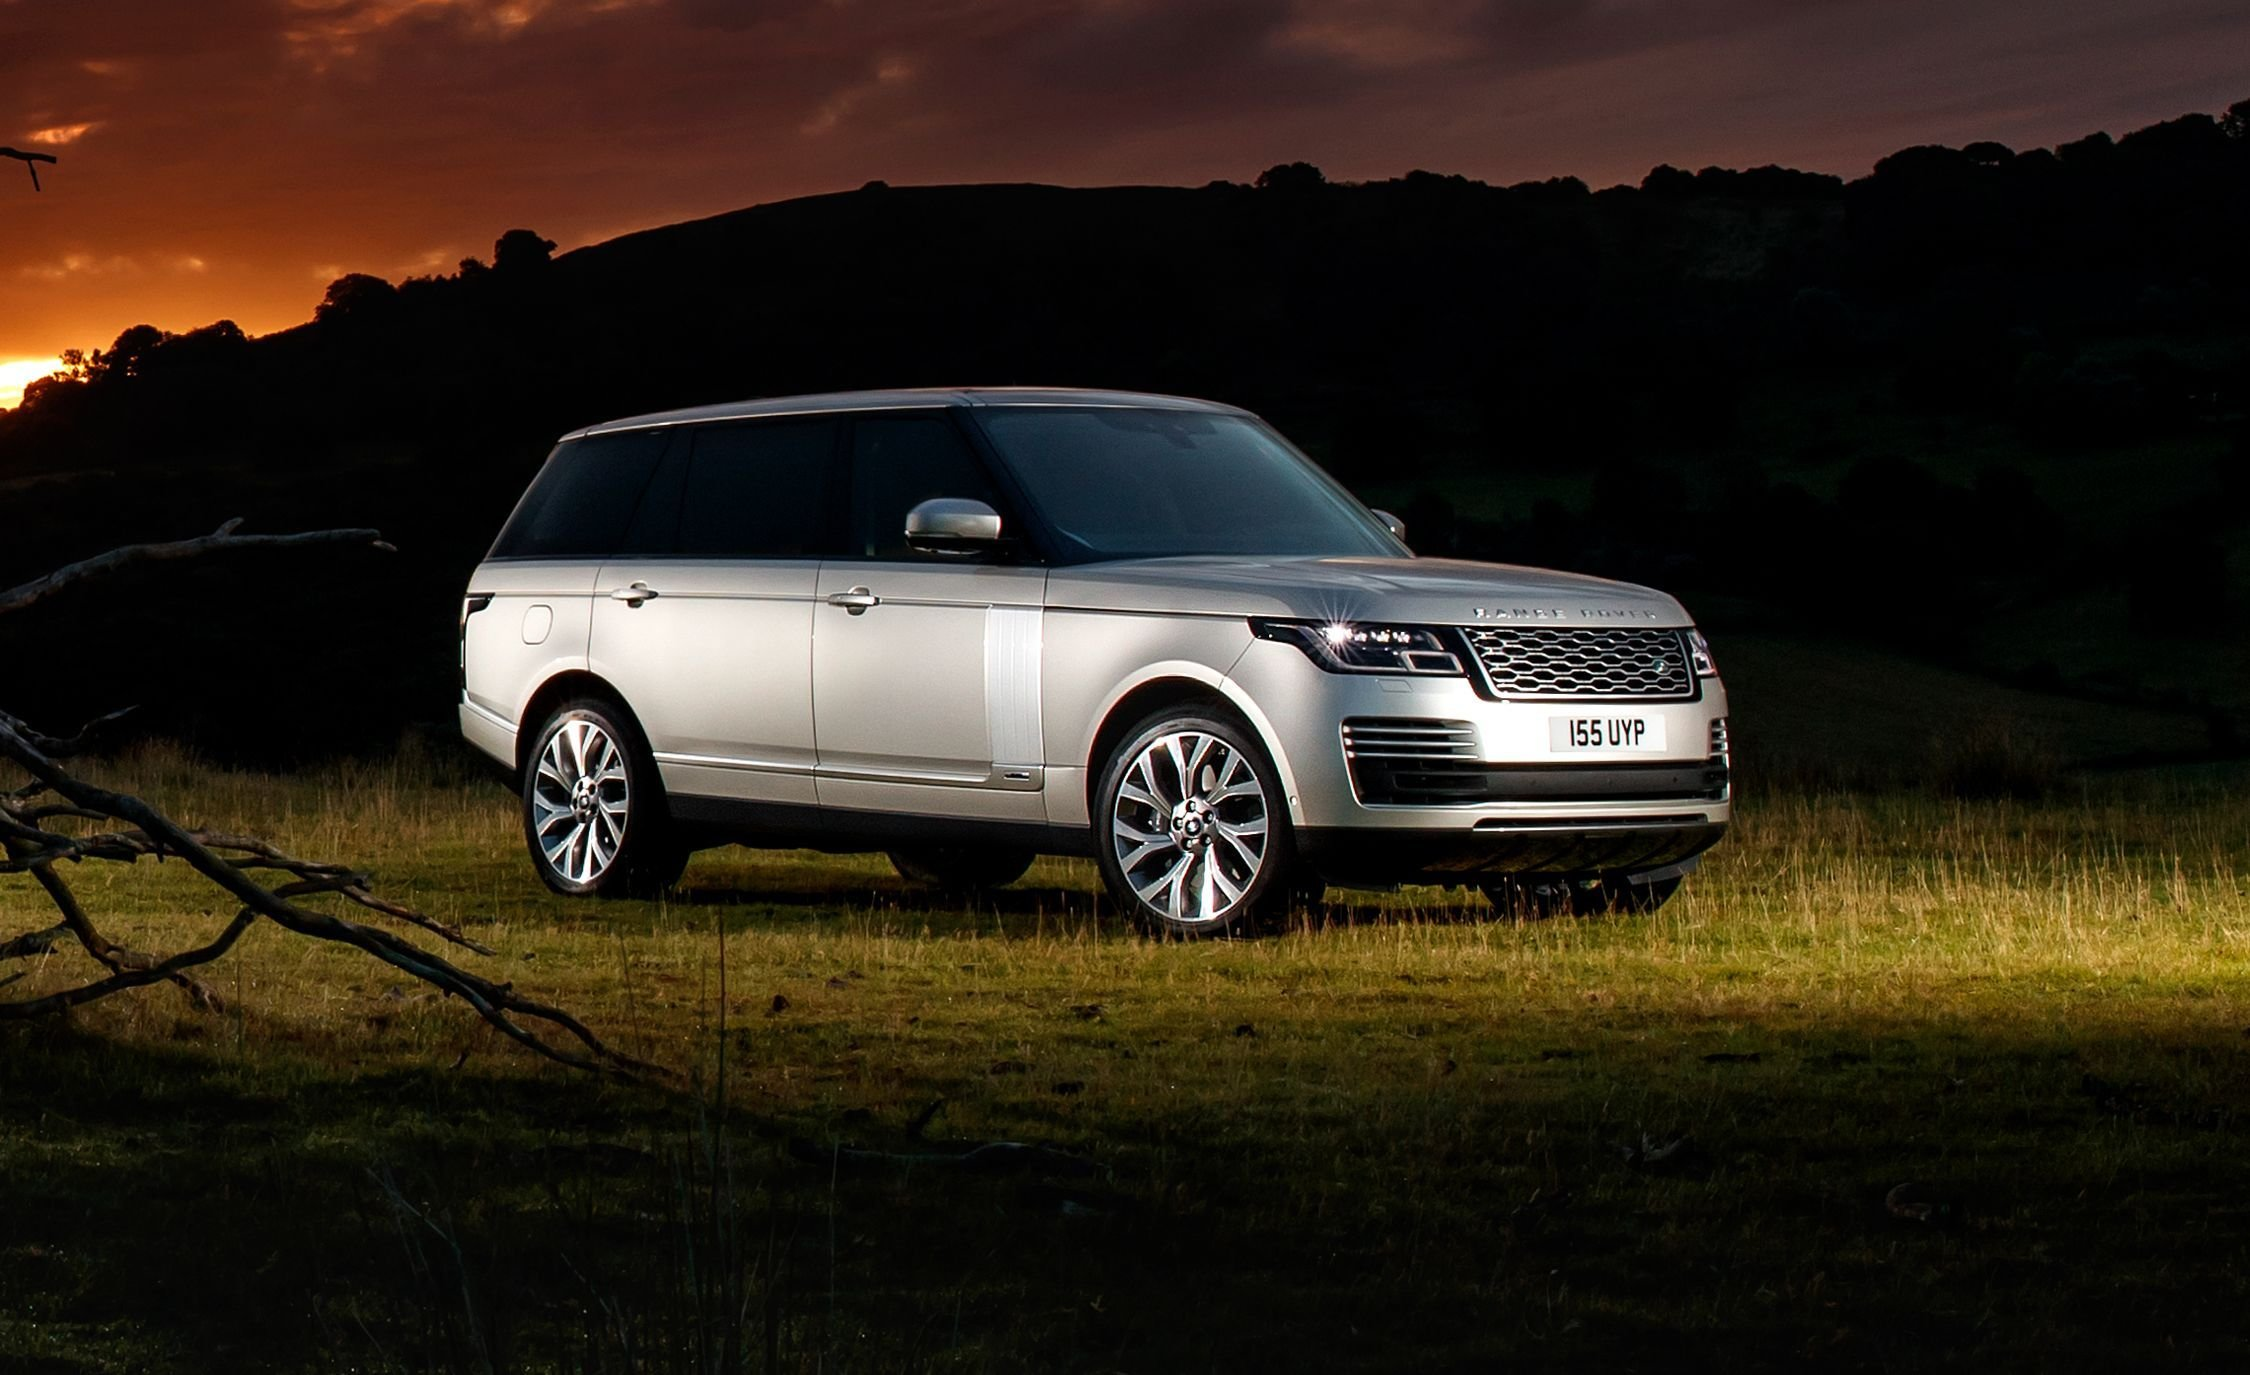 Latest 2019 Range Rover P400E Photos And Info News Car And Driver Free Download